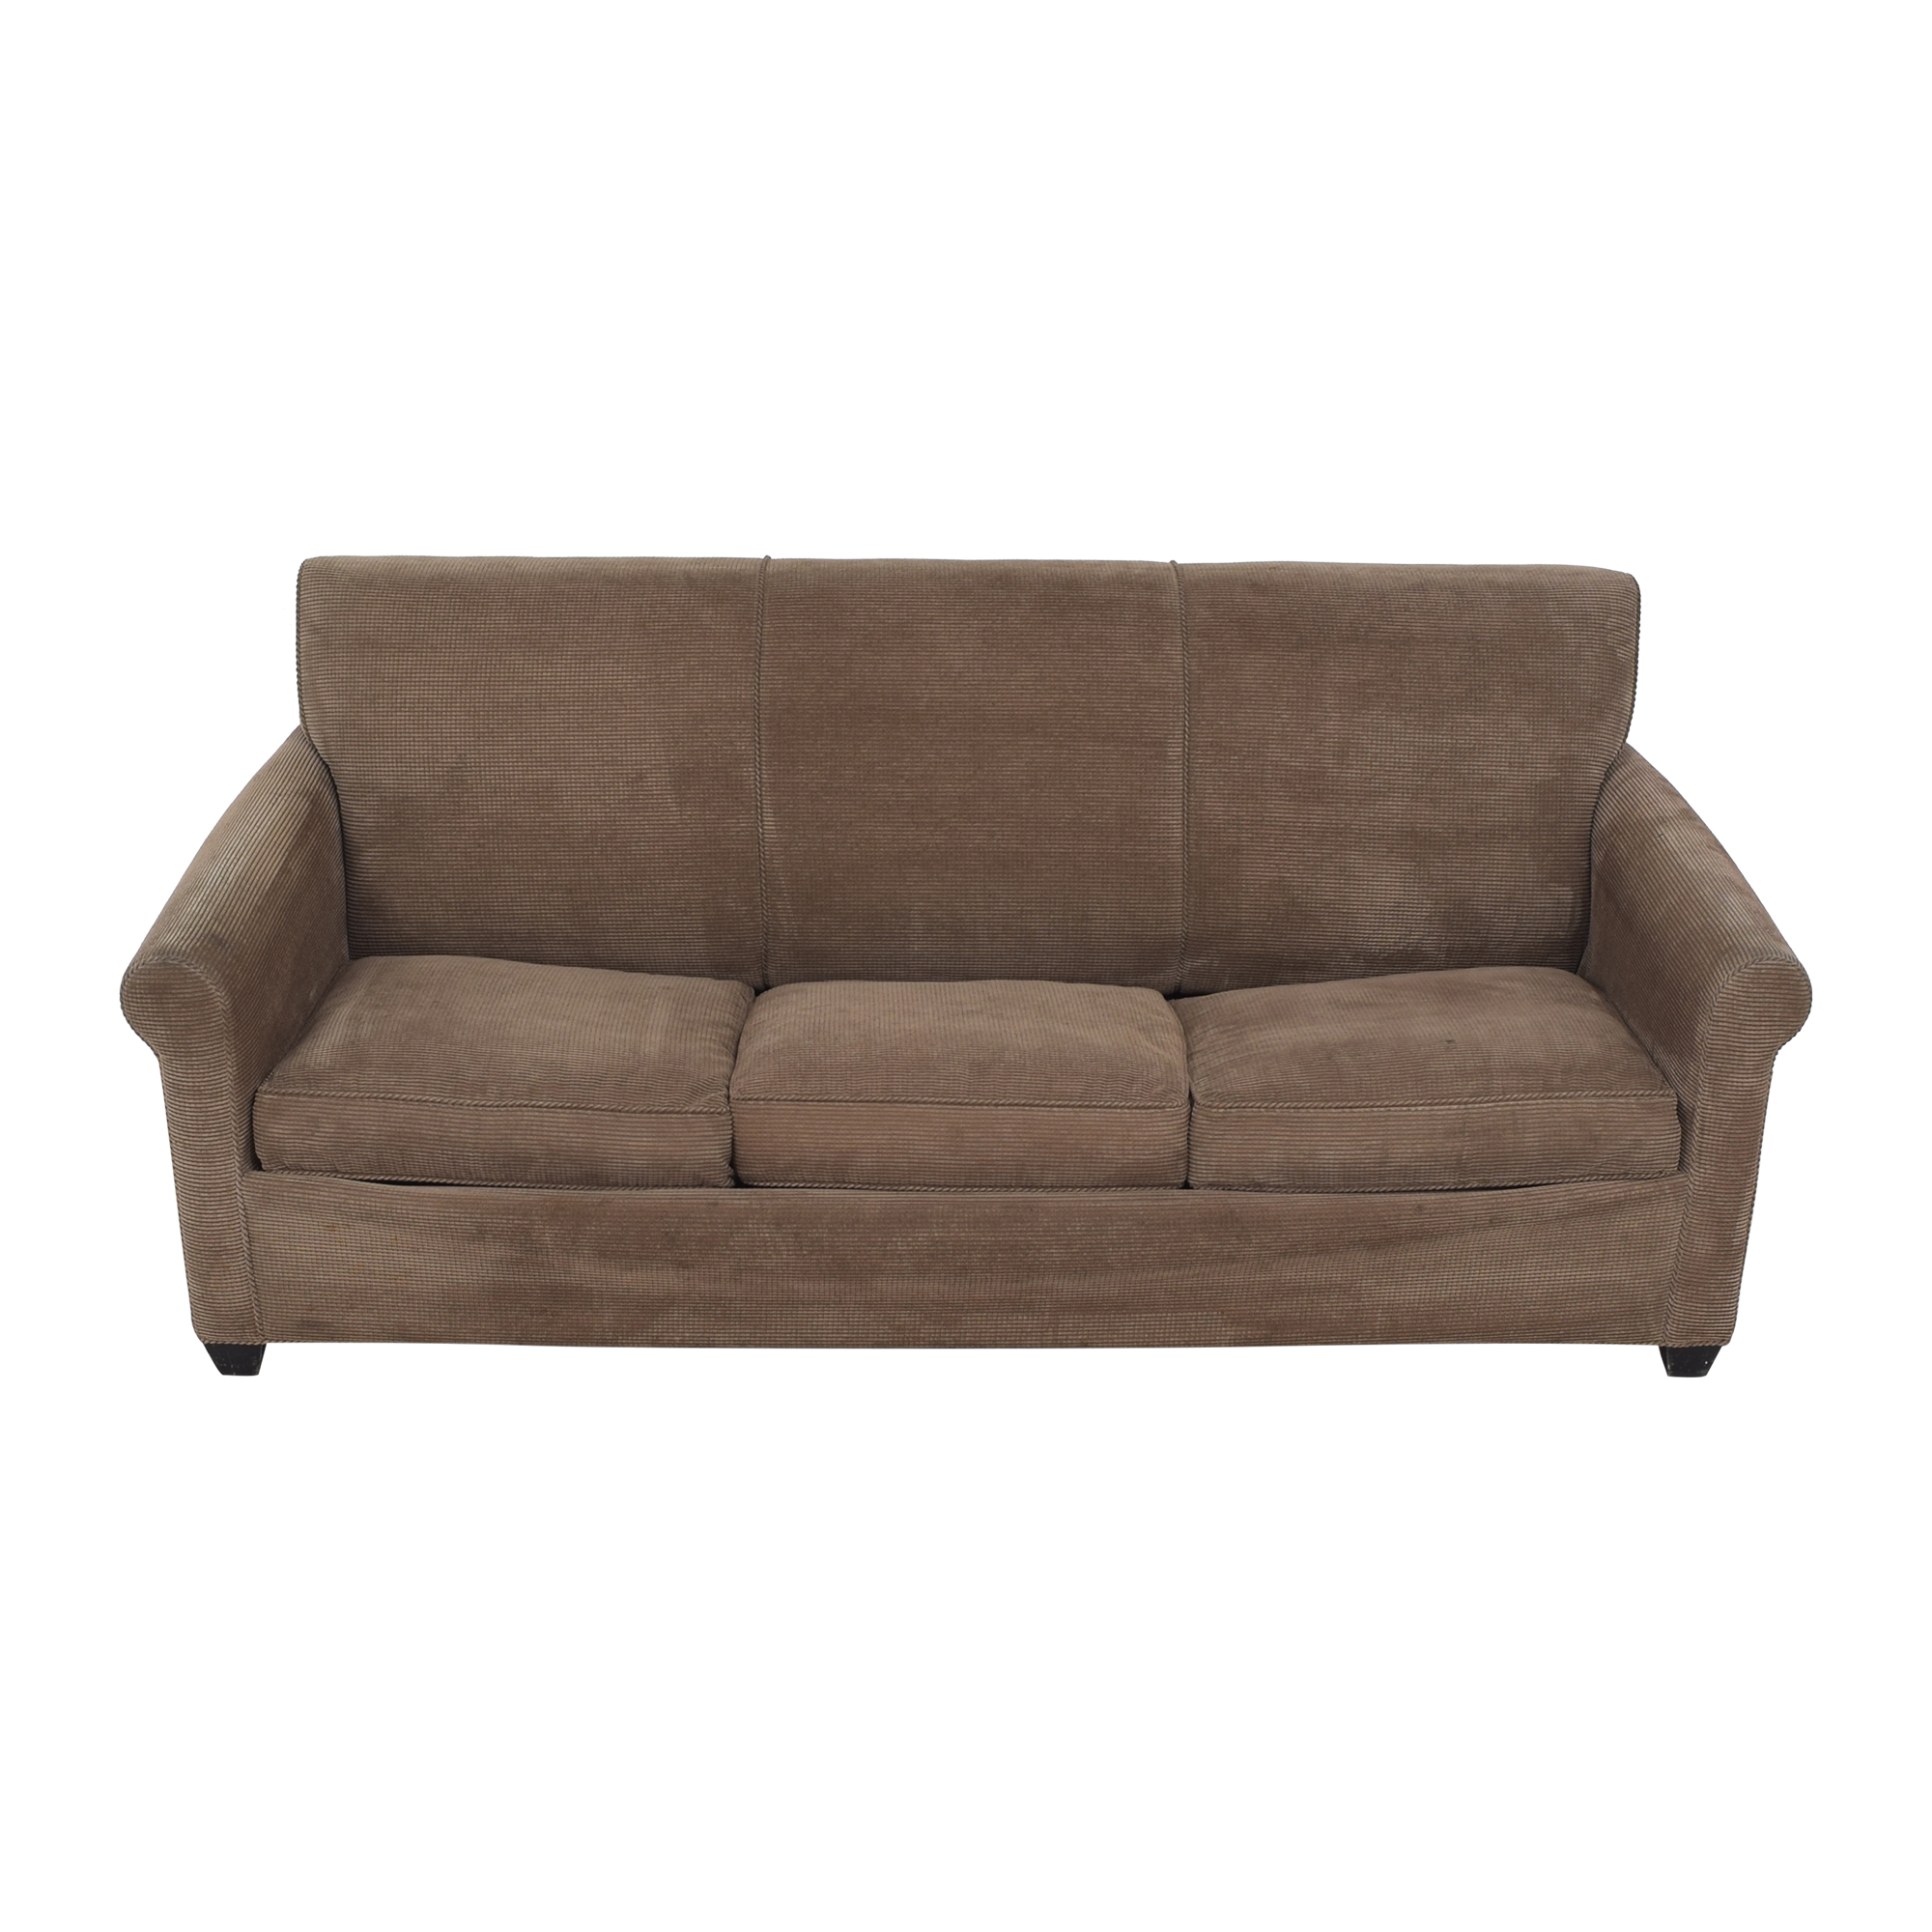 Crate & Barrel Sleeper Sofa / Sofas